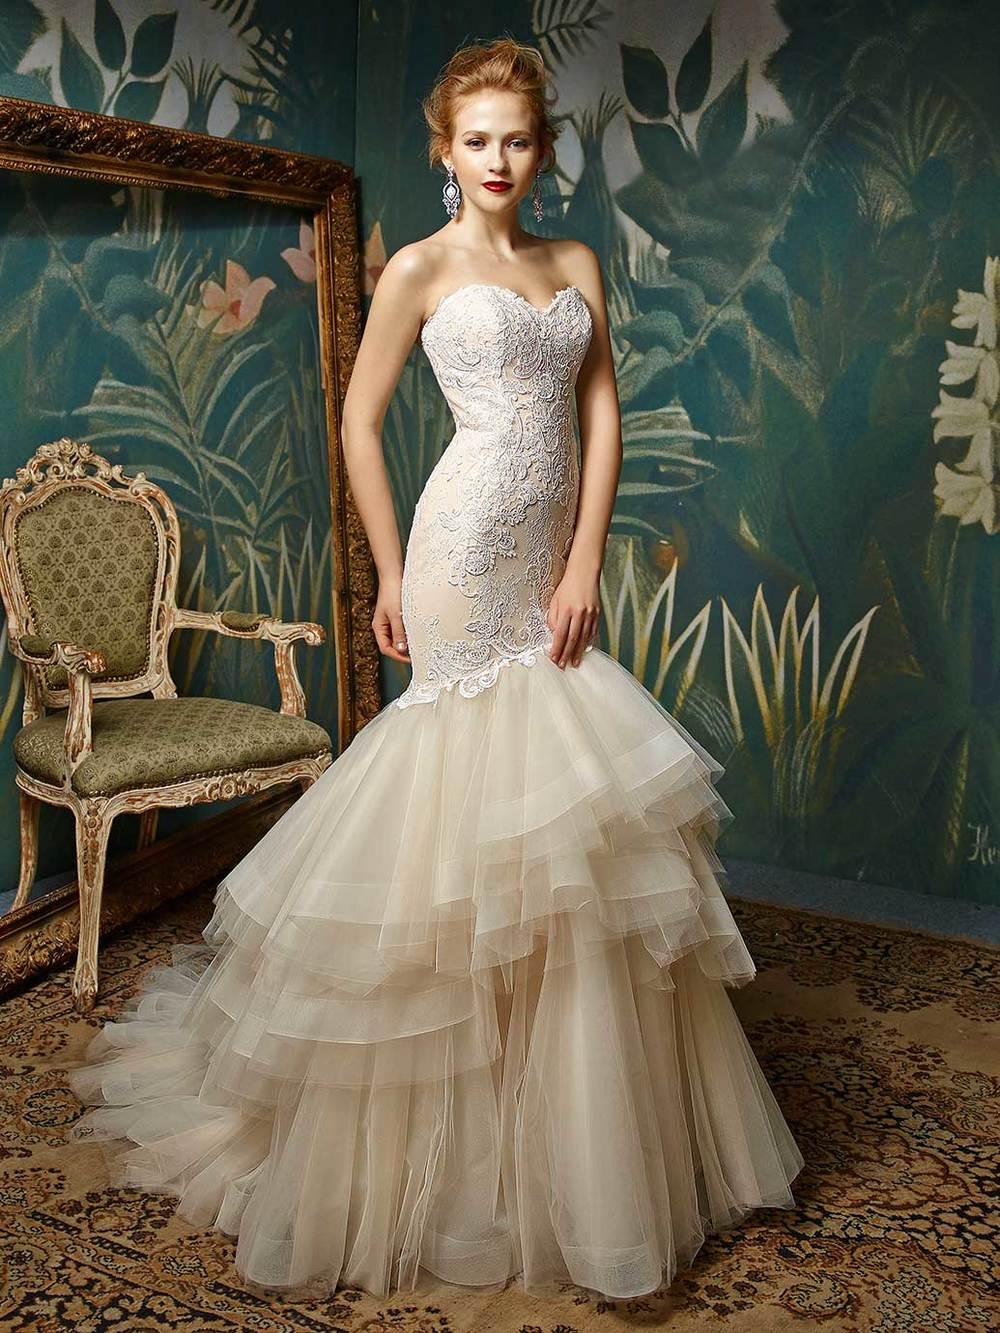 Modern Romance Wedding Dress : Enzoani modern romantic collection bridal gowns uk wedding